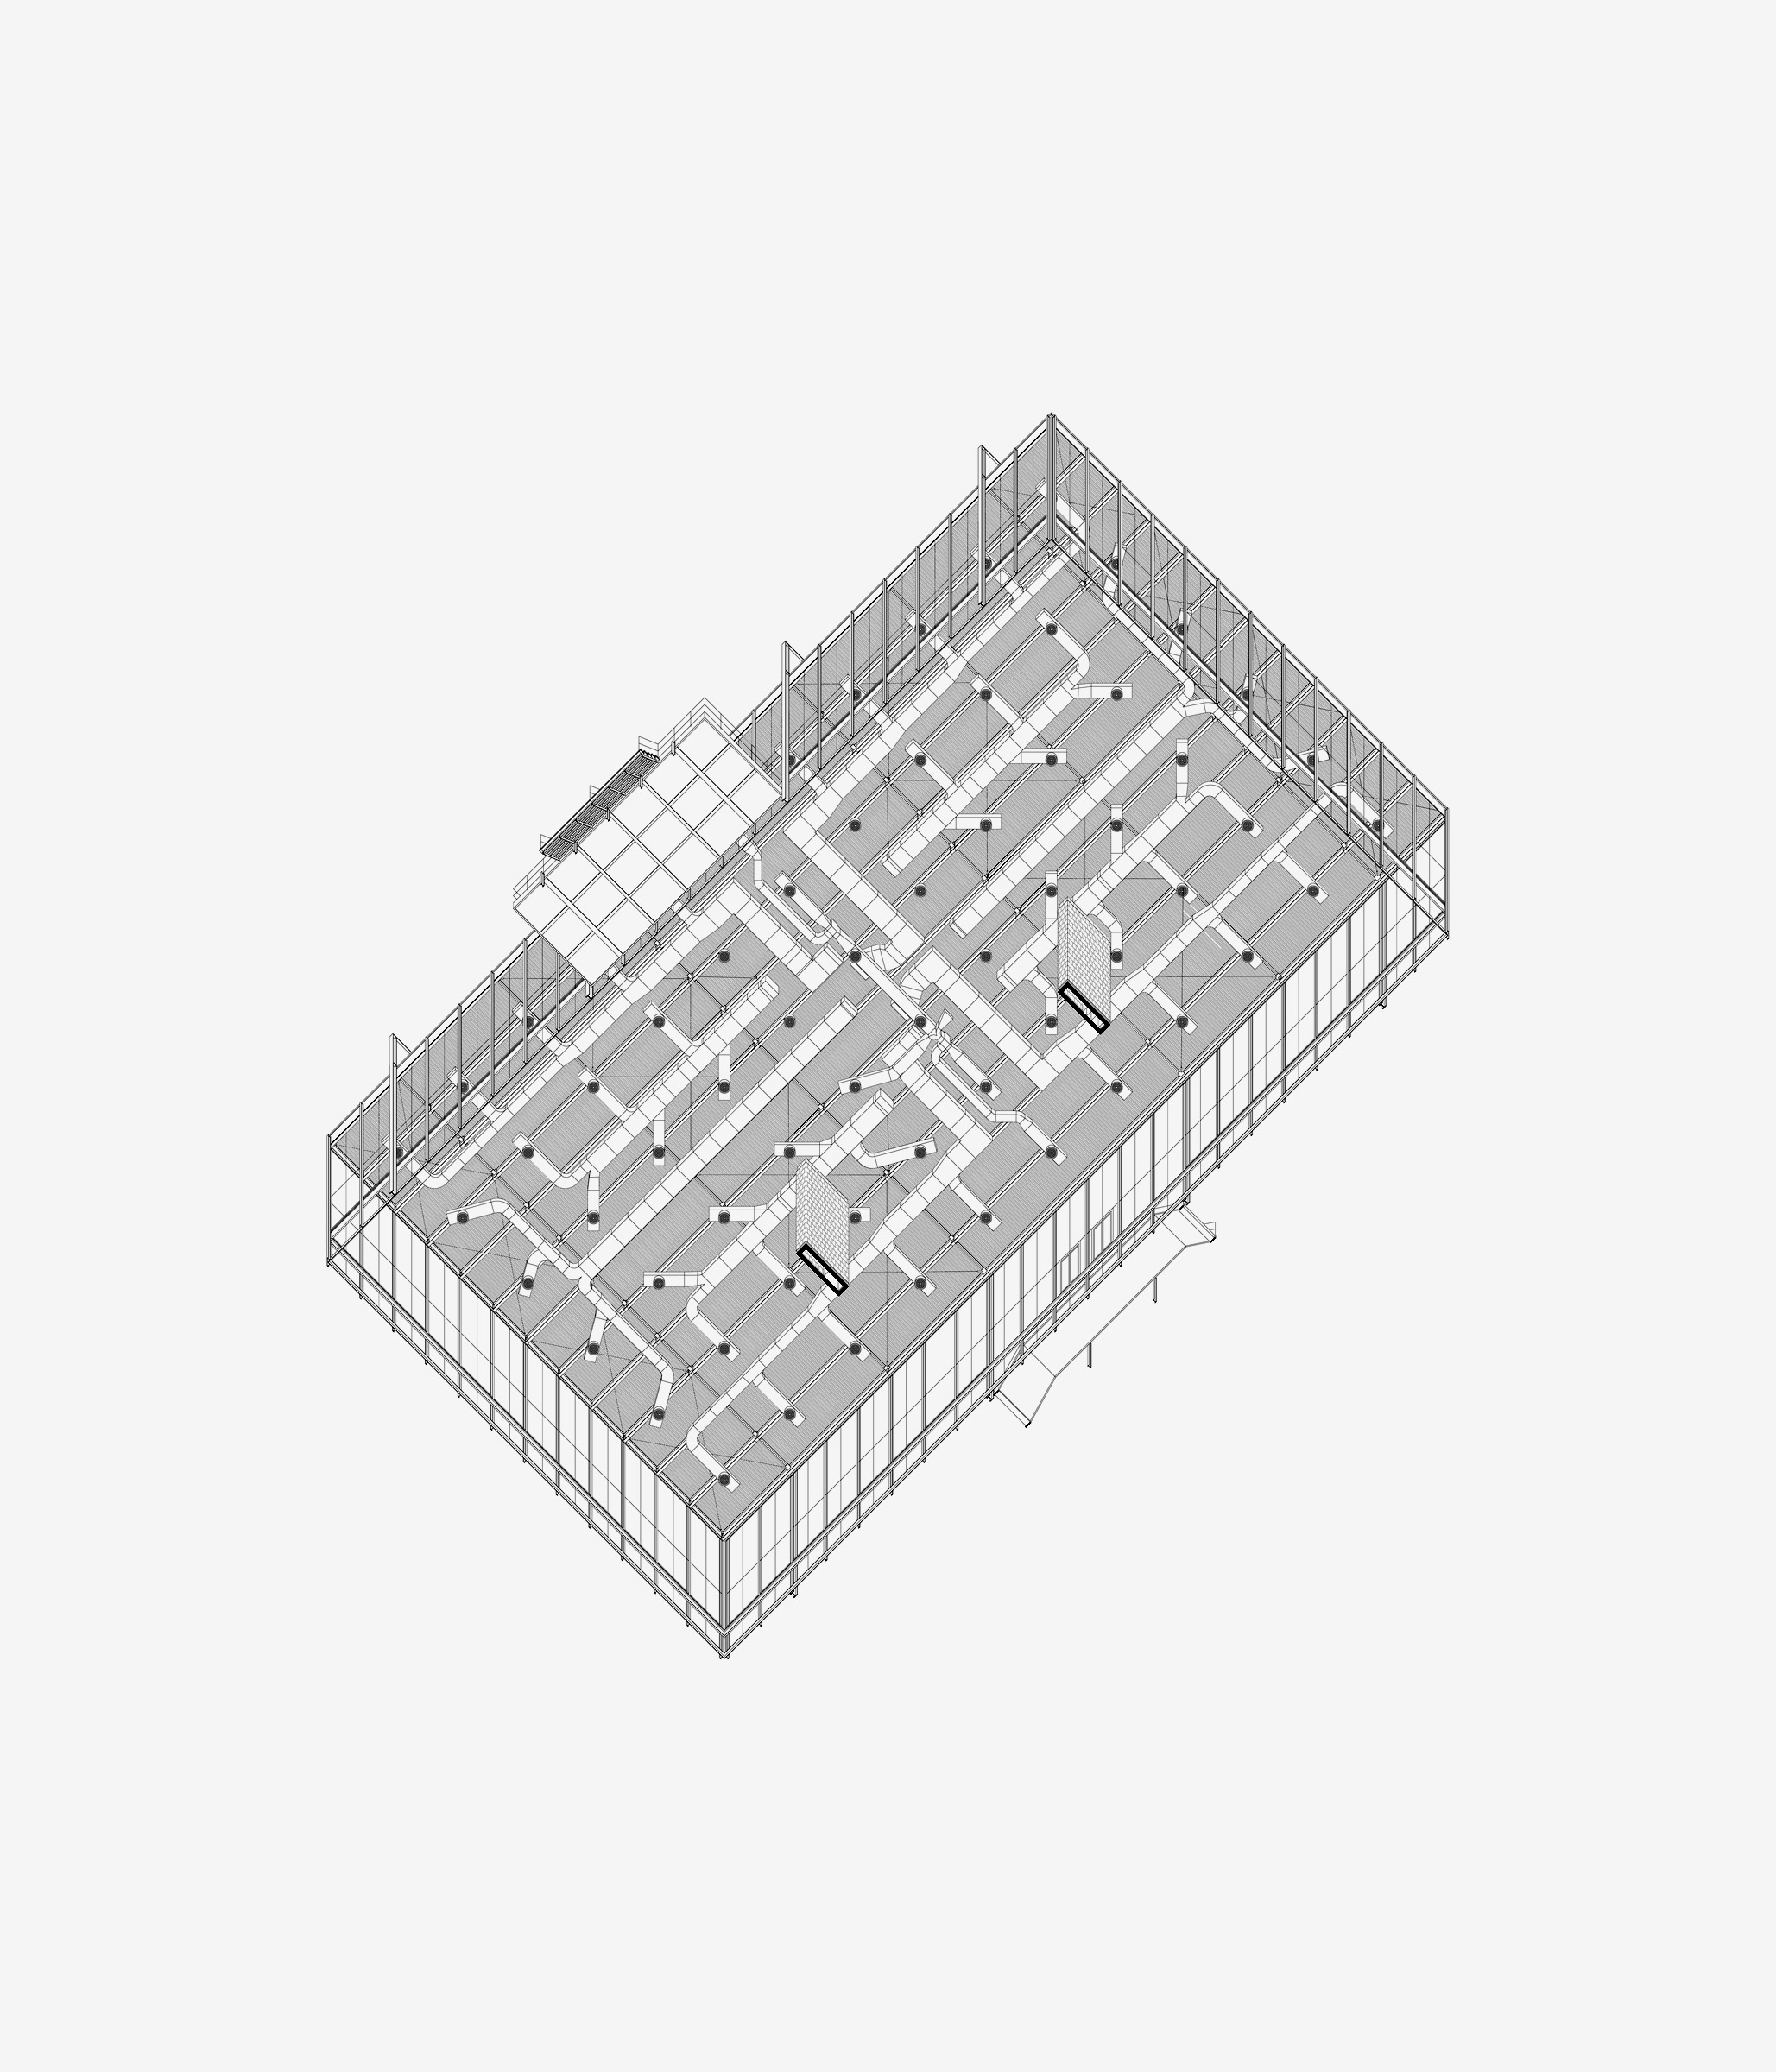 MvdR Universal. Reverse axis axonometric. Architecture and Institute of Design Building (S. R. Crown Hall at IIT) in Chicago, Illinois (1950-1956)